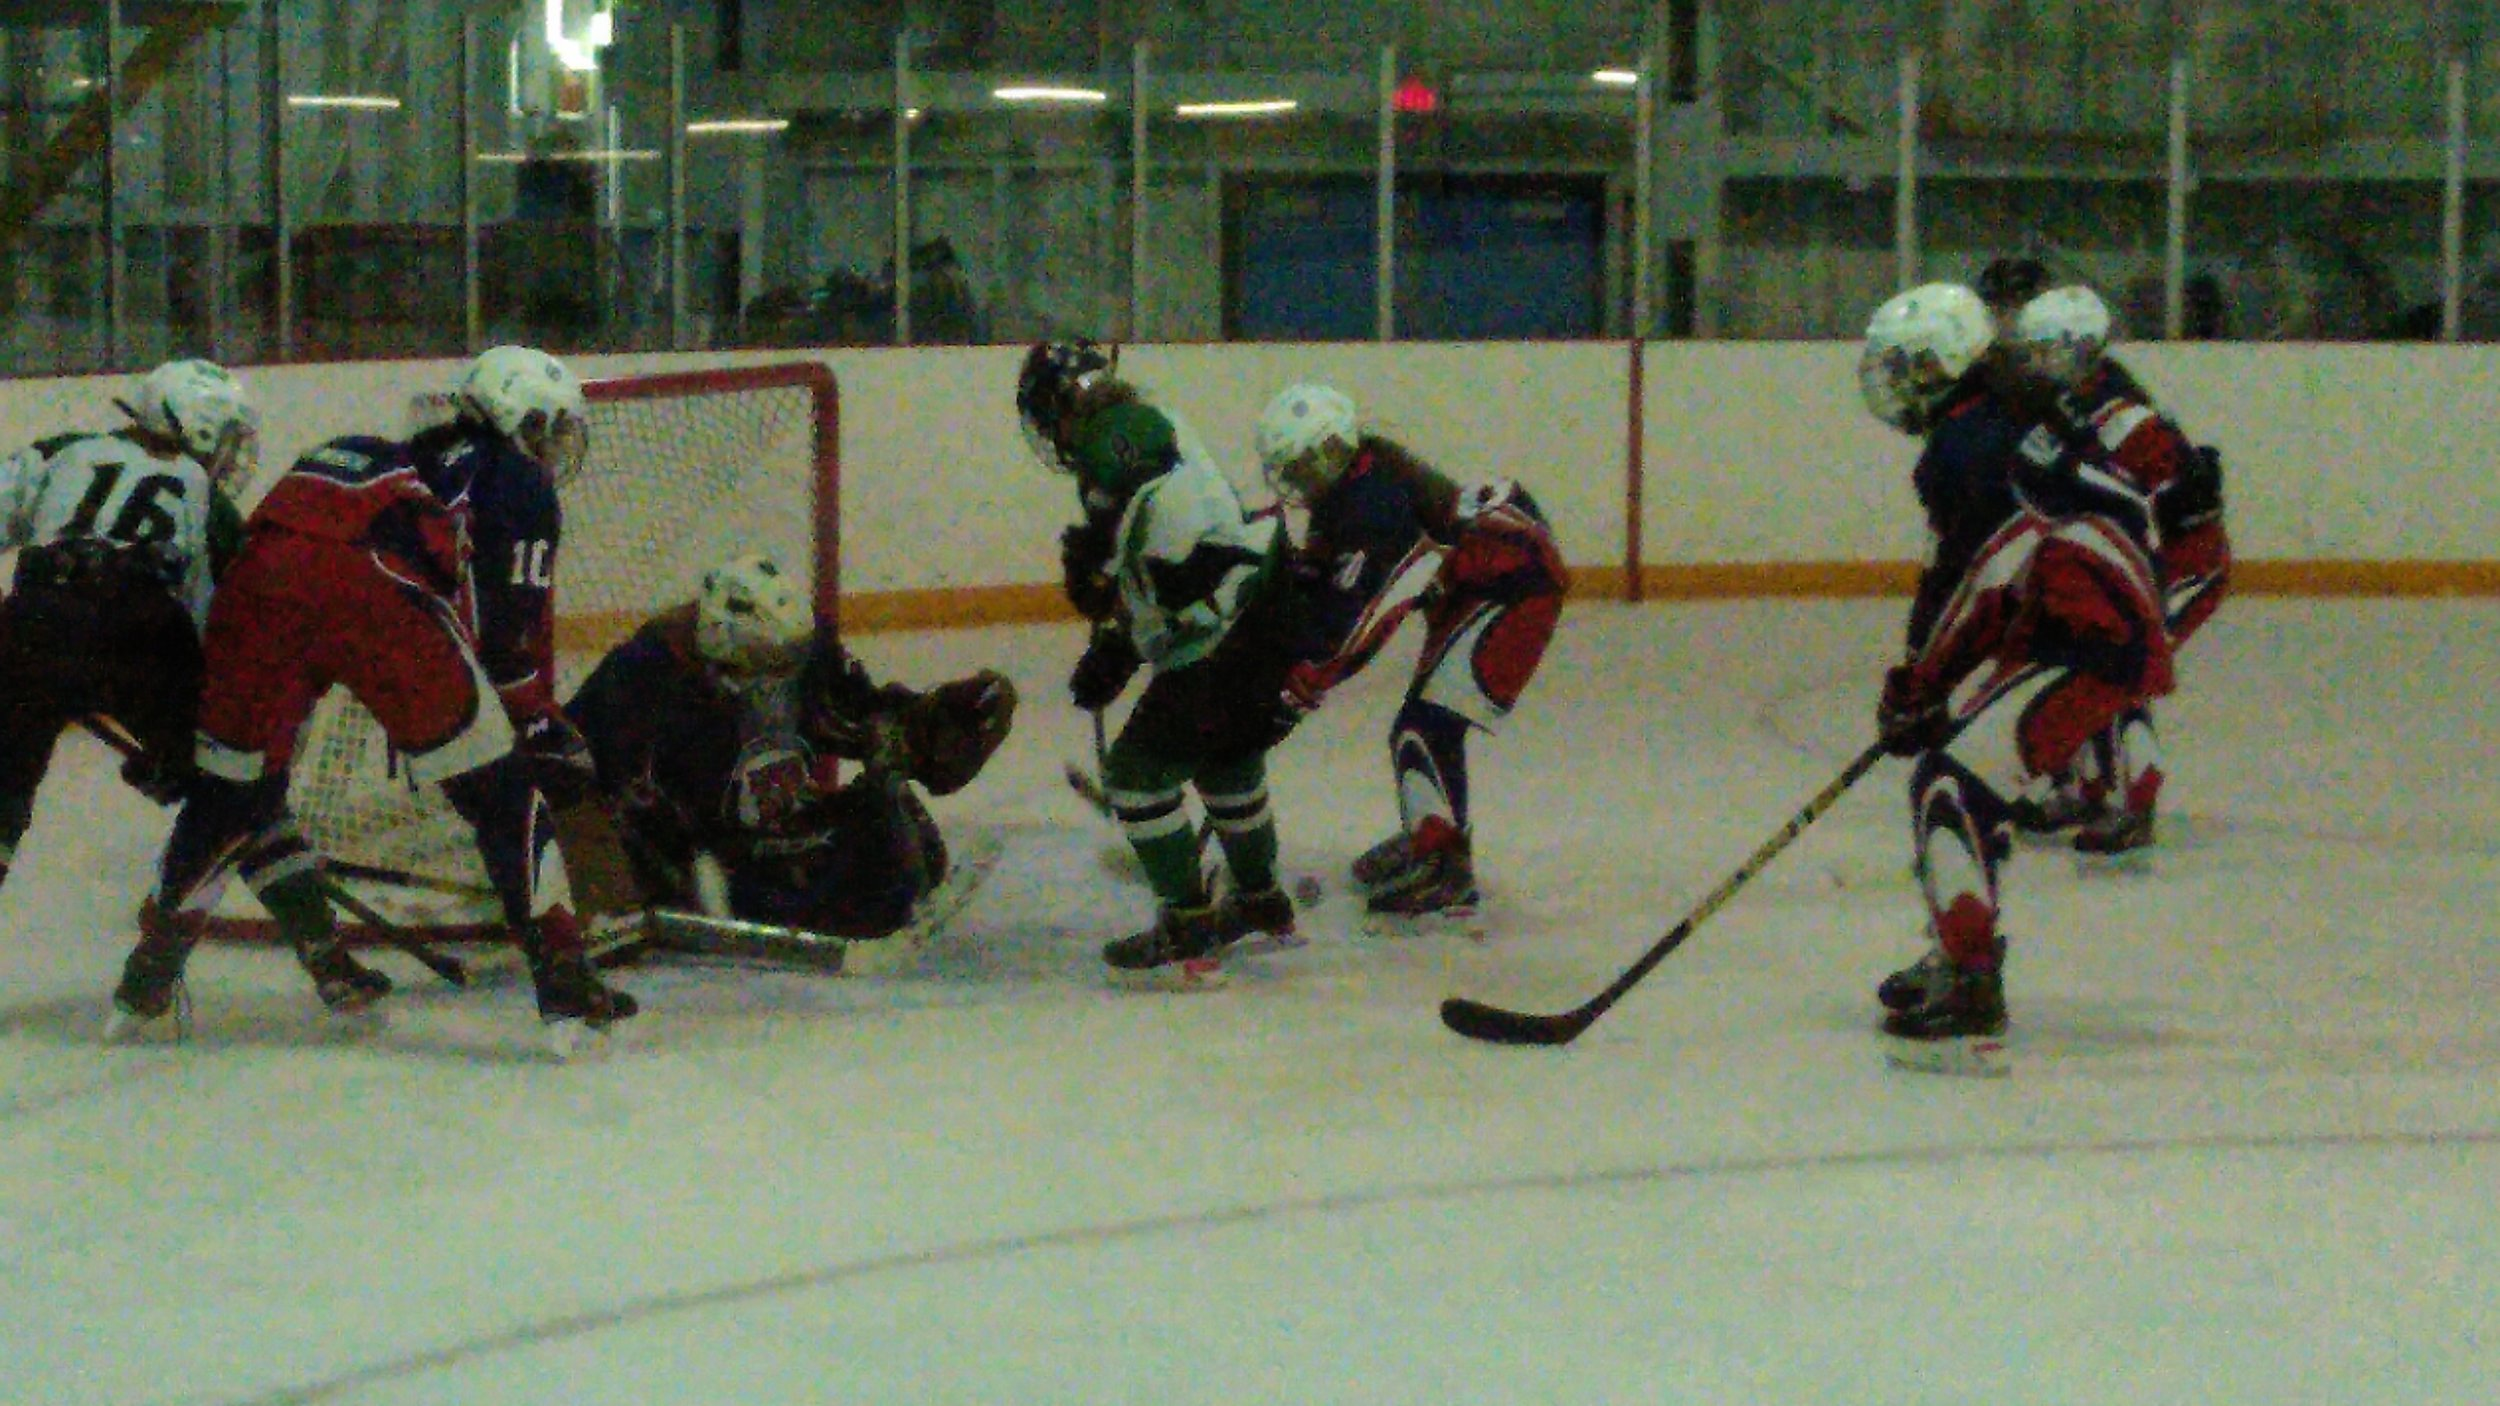 Action from Game One Friday night in Moose Jaw - MJ Independent File Photo